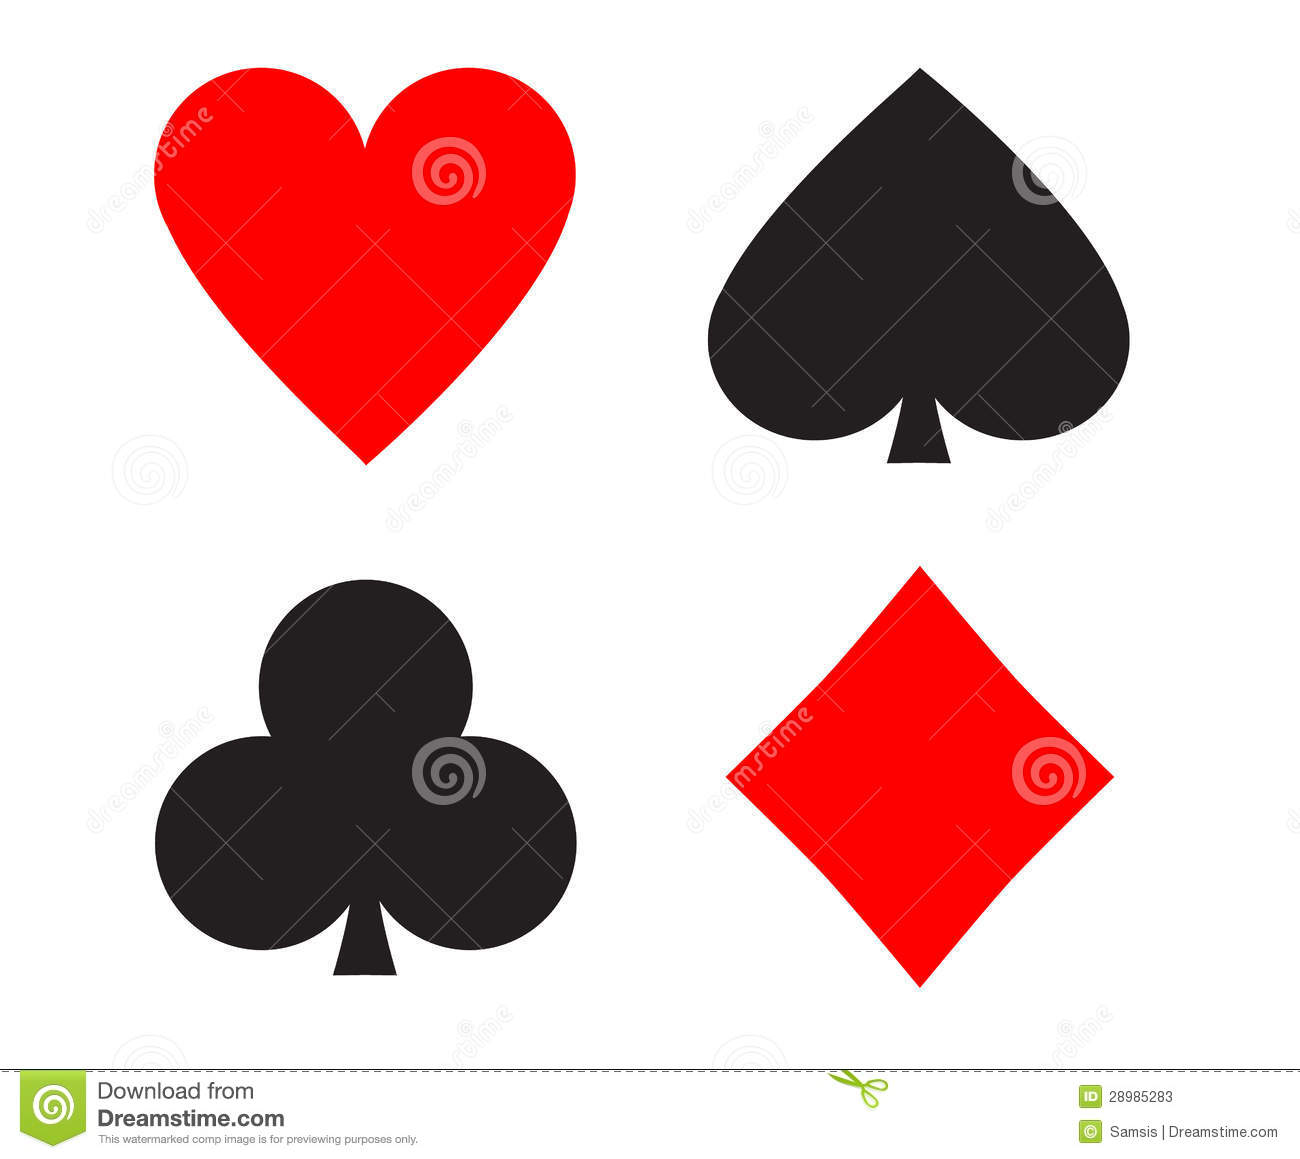 Amazoncom Let It Ride and Three Card Poker Casino Card